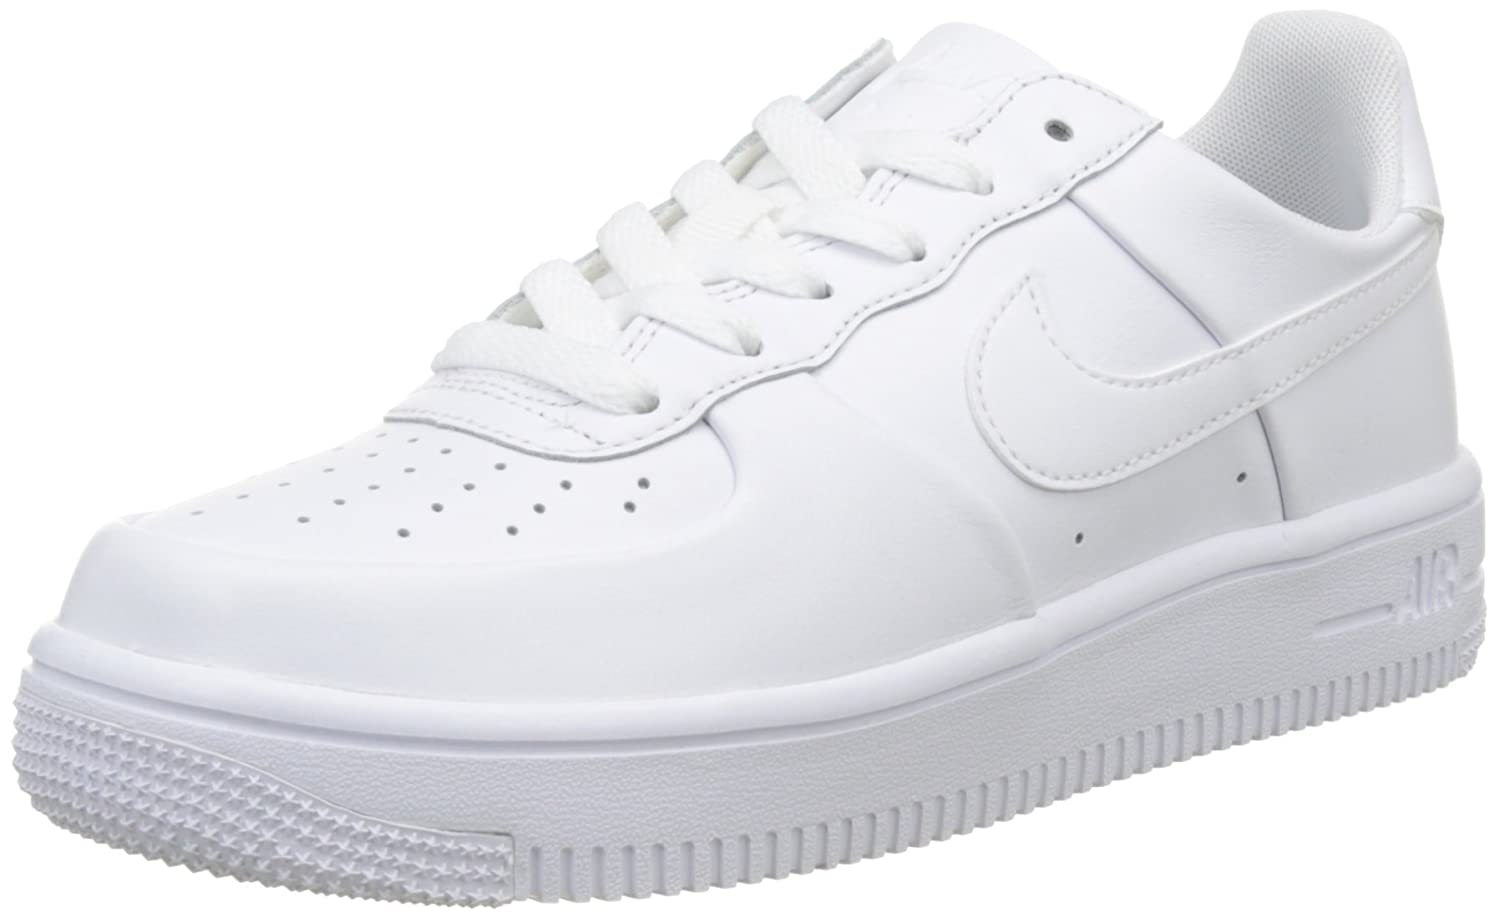 new arrival edd57 b602f Amazon.com   Nike Air Force 1 Ultraforce GS Big Kids  Shoes  White White White 845128-101   Basketball